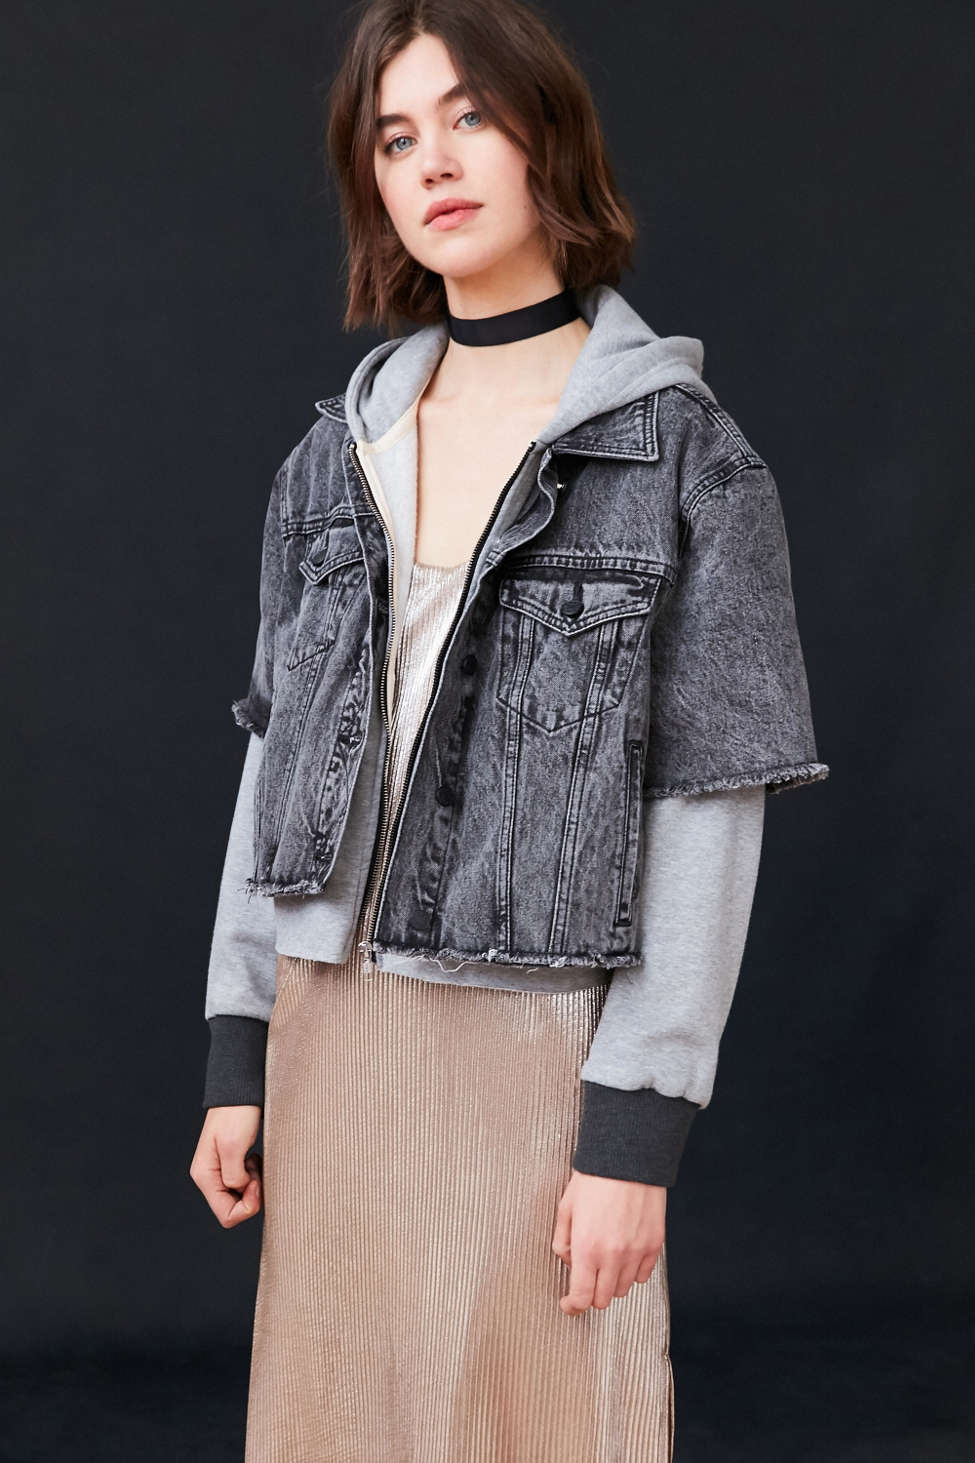 http://www.urbanoutfitters.com/urban/catalog/productdetail.jsp?id=40206666&category=W-COATS-DENIM